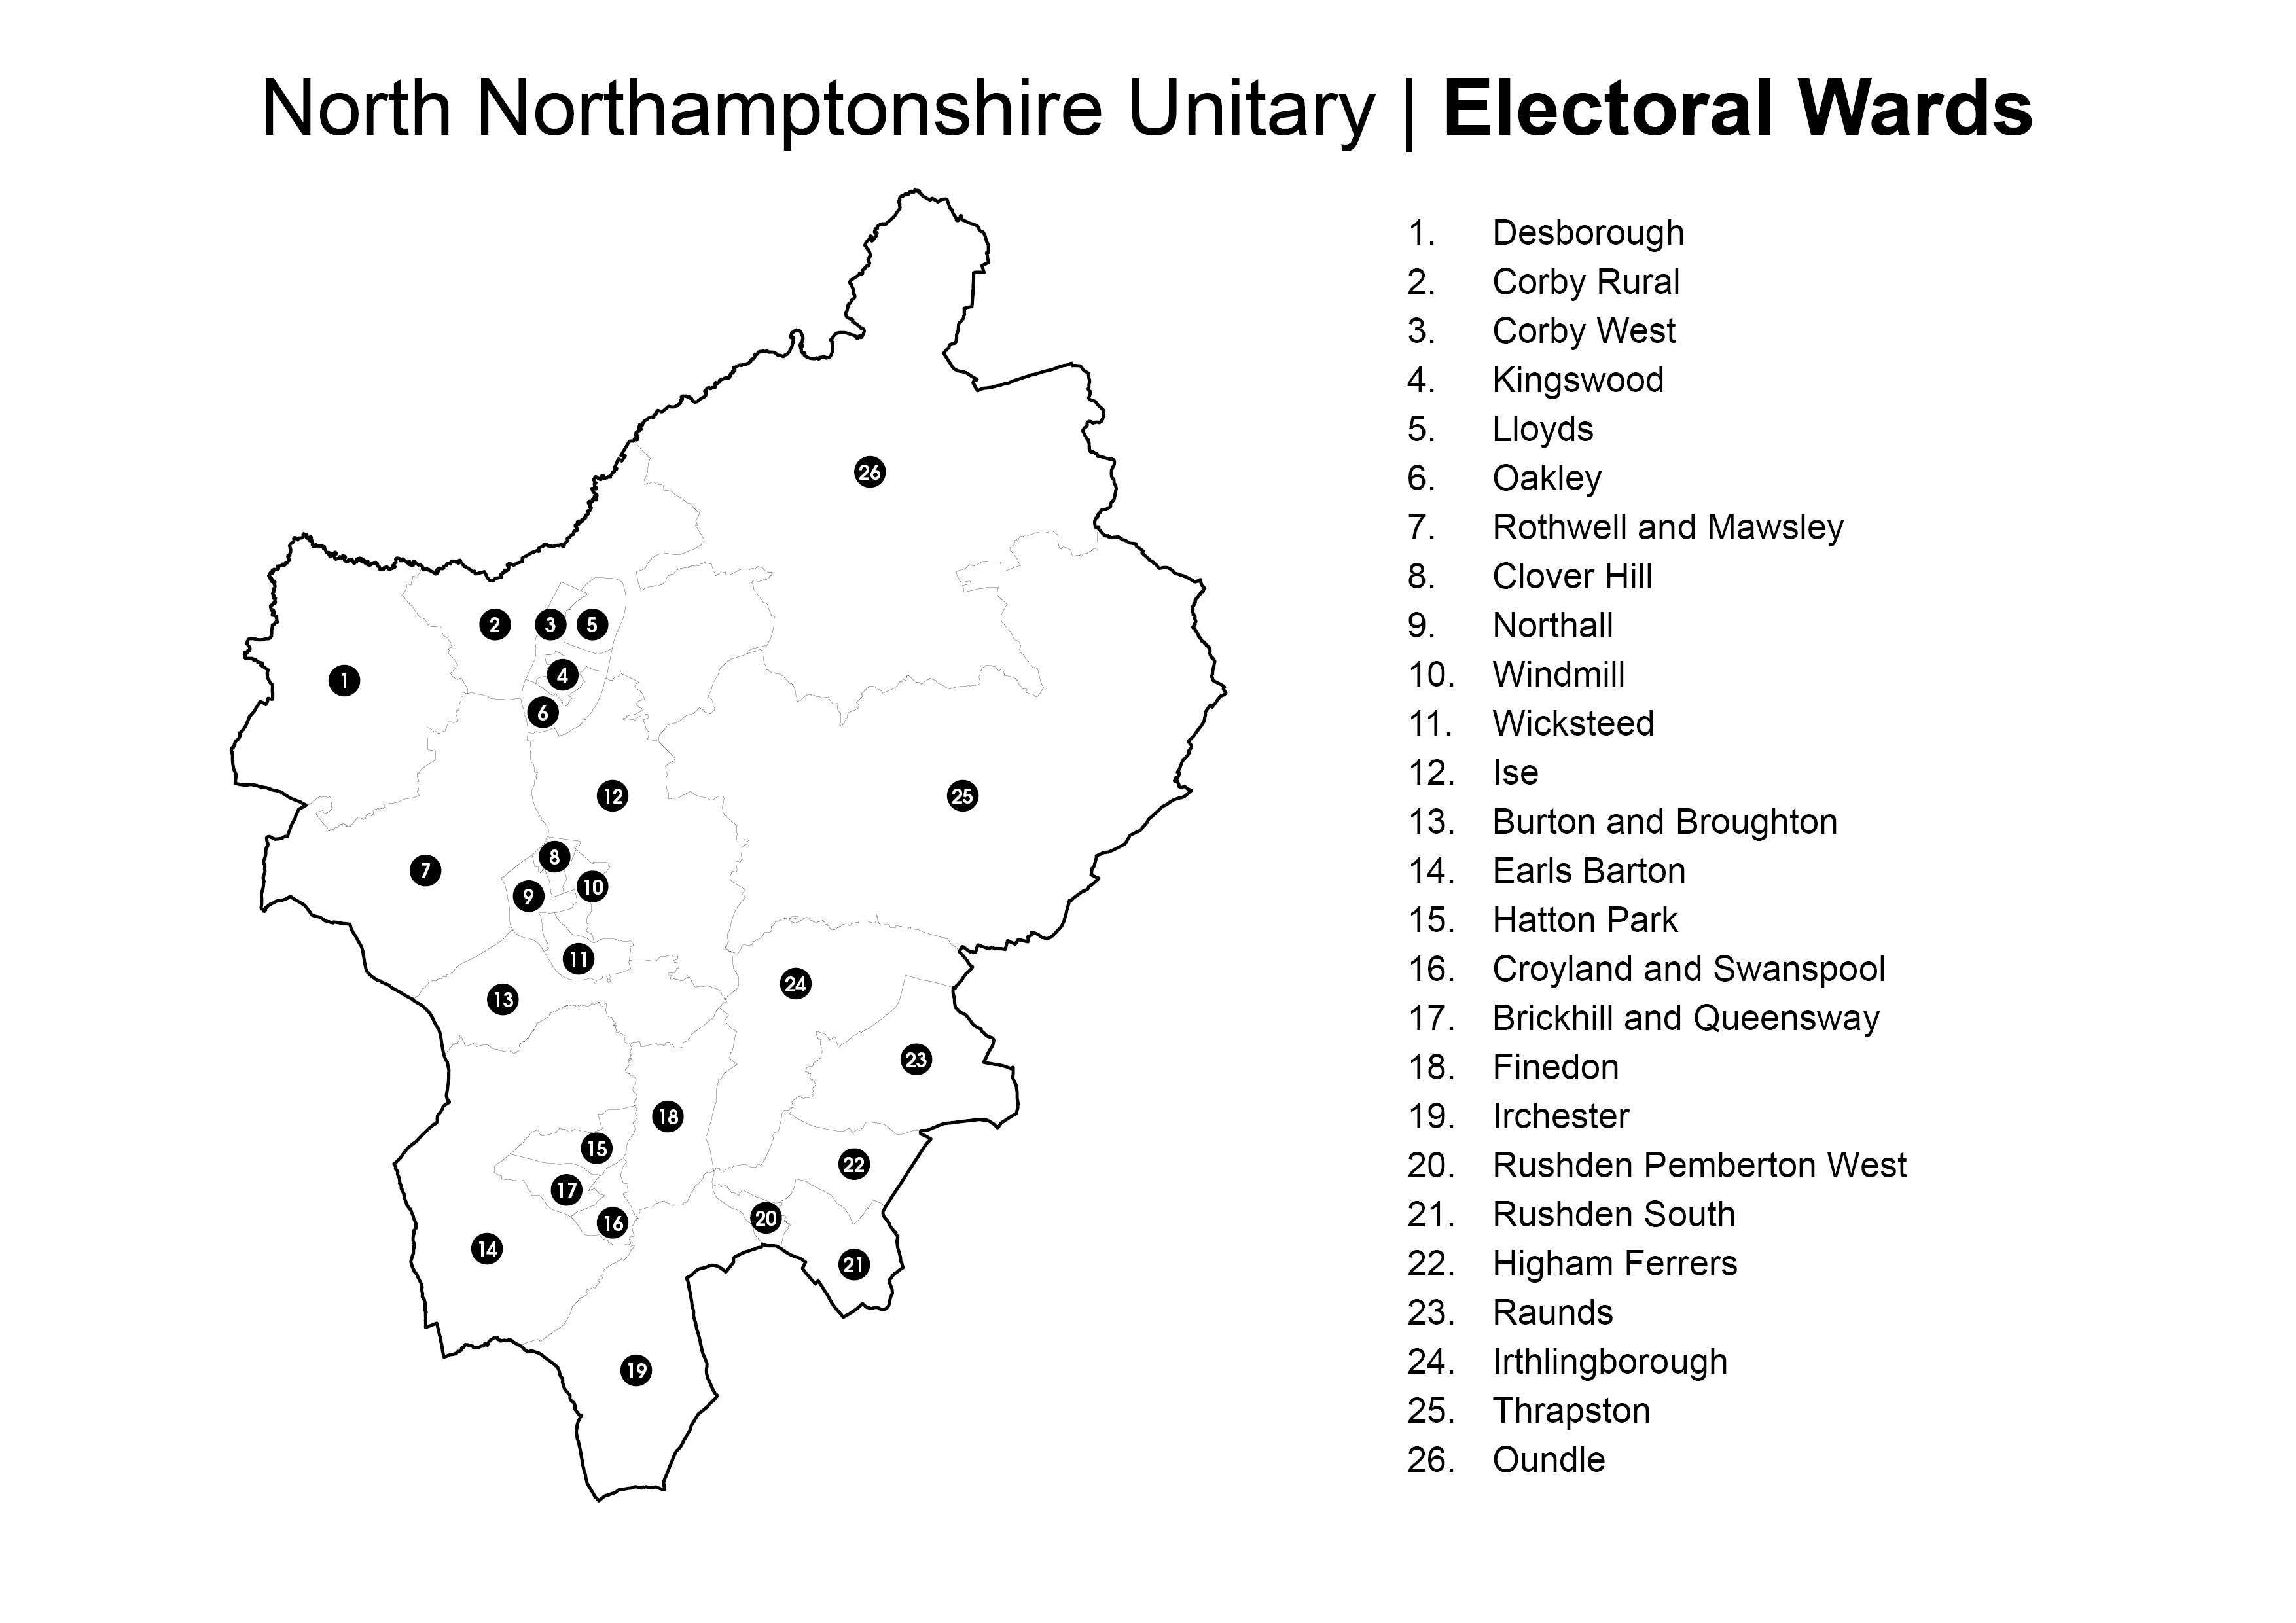 Electoral ward north